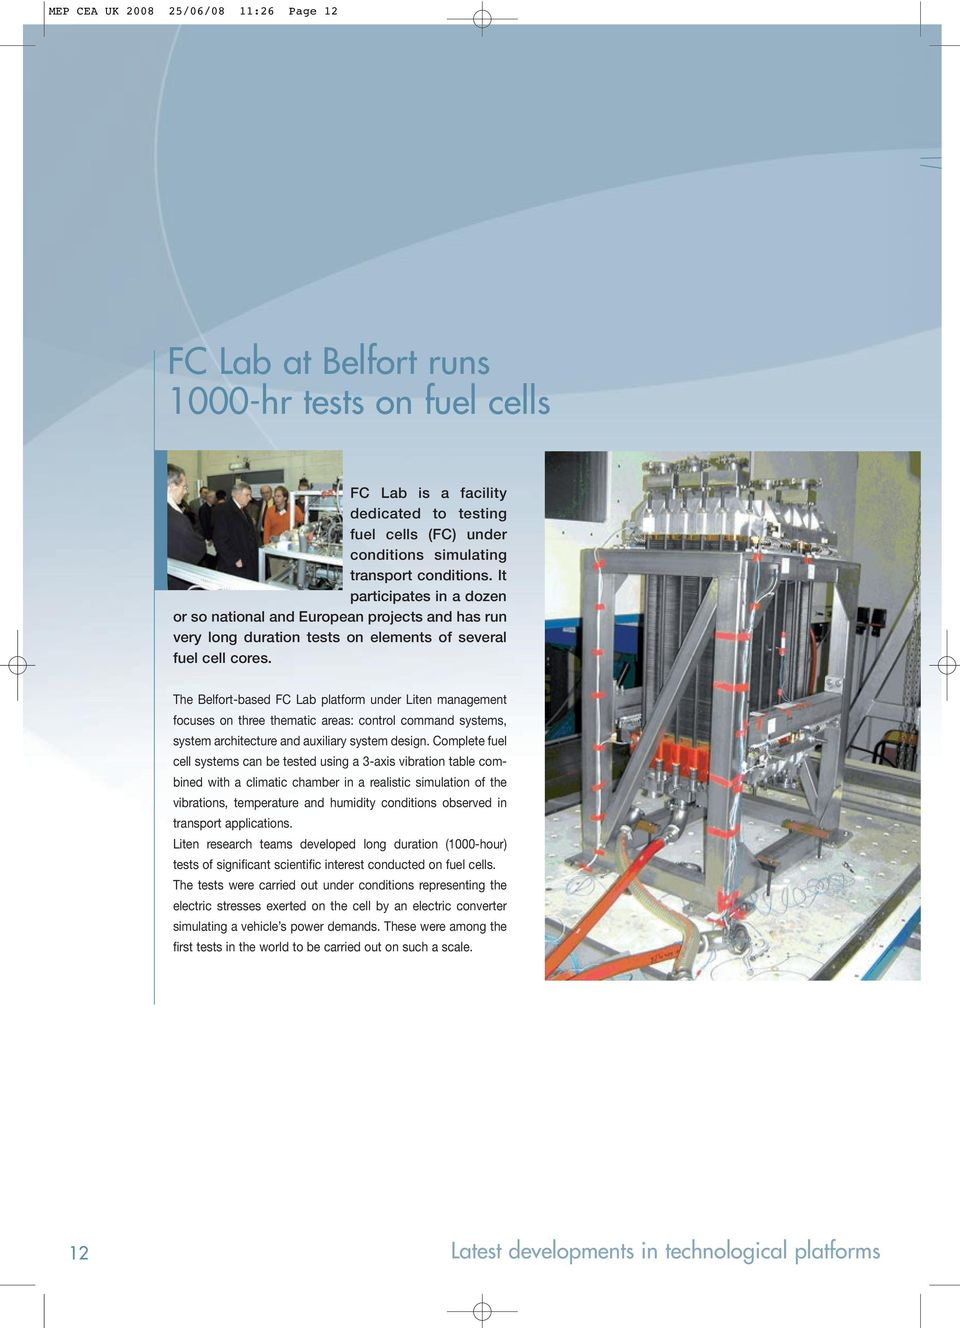 The Belfort-based FC Lab platform under Liten management focuses on three thematic areas: control command systems, system architecture and auxiliary system design.